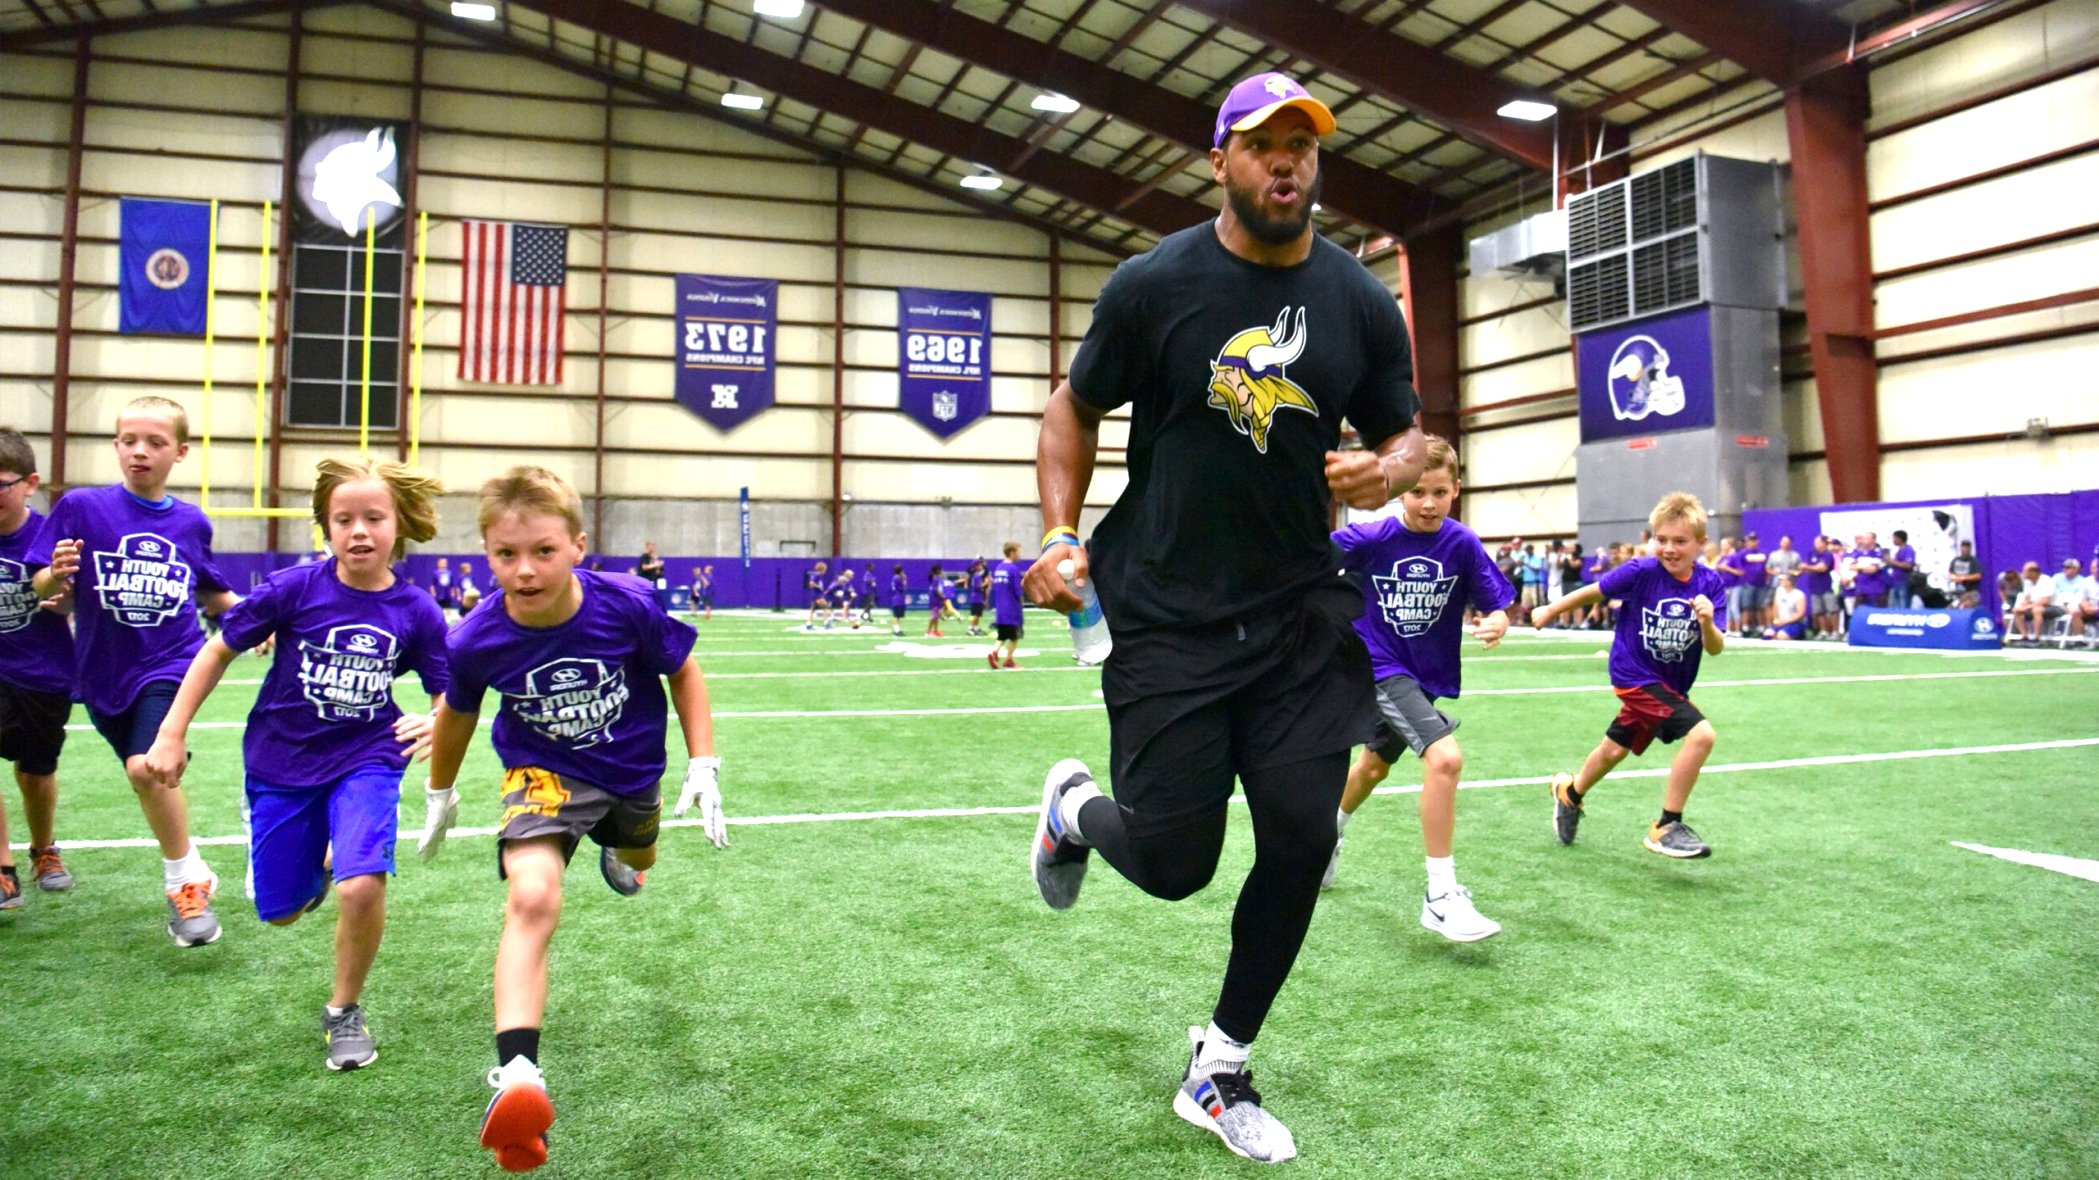 2020 hyundai youth football camp Release Date